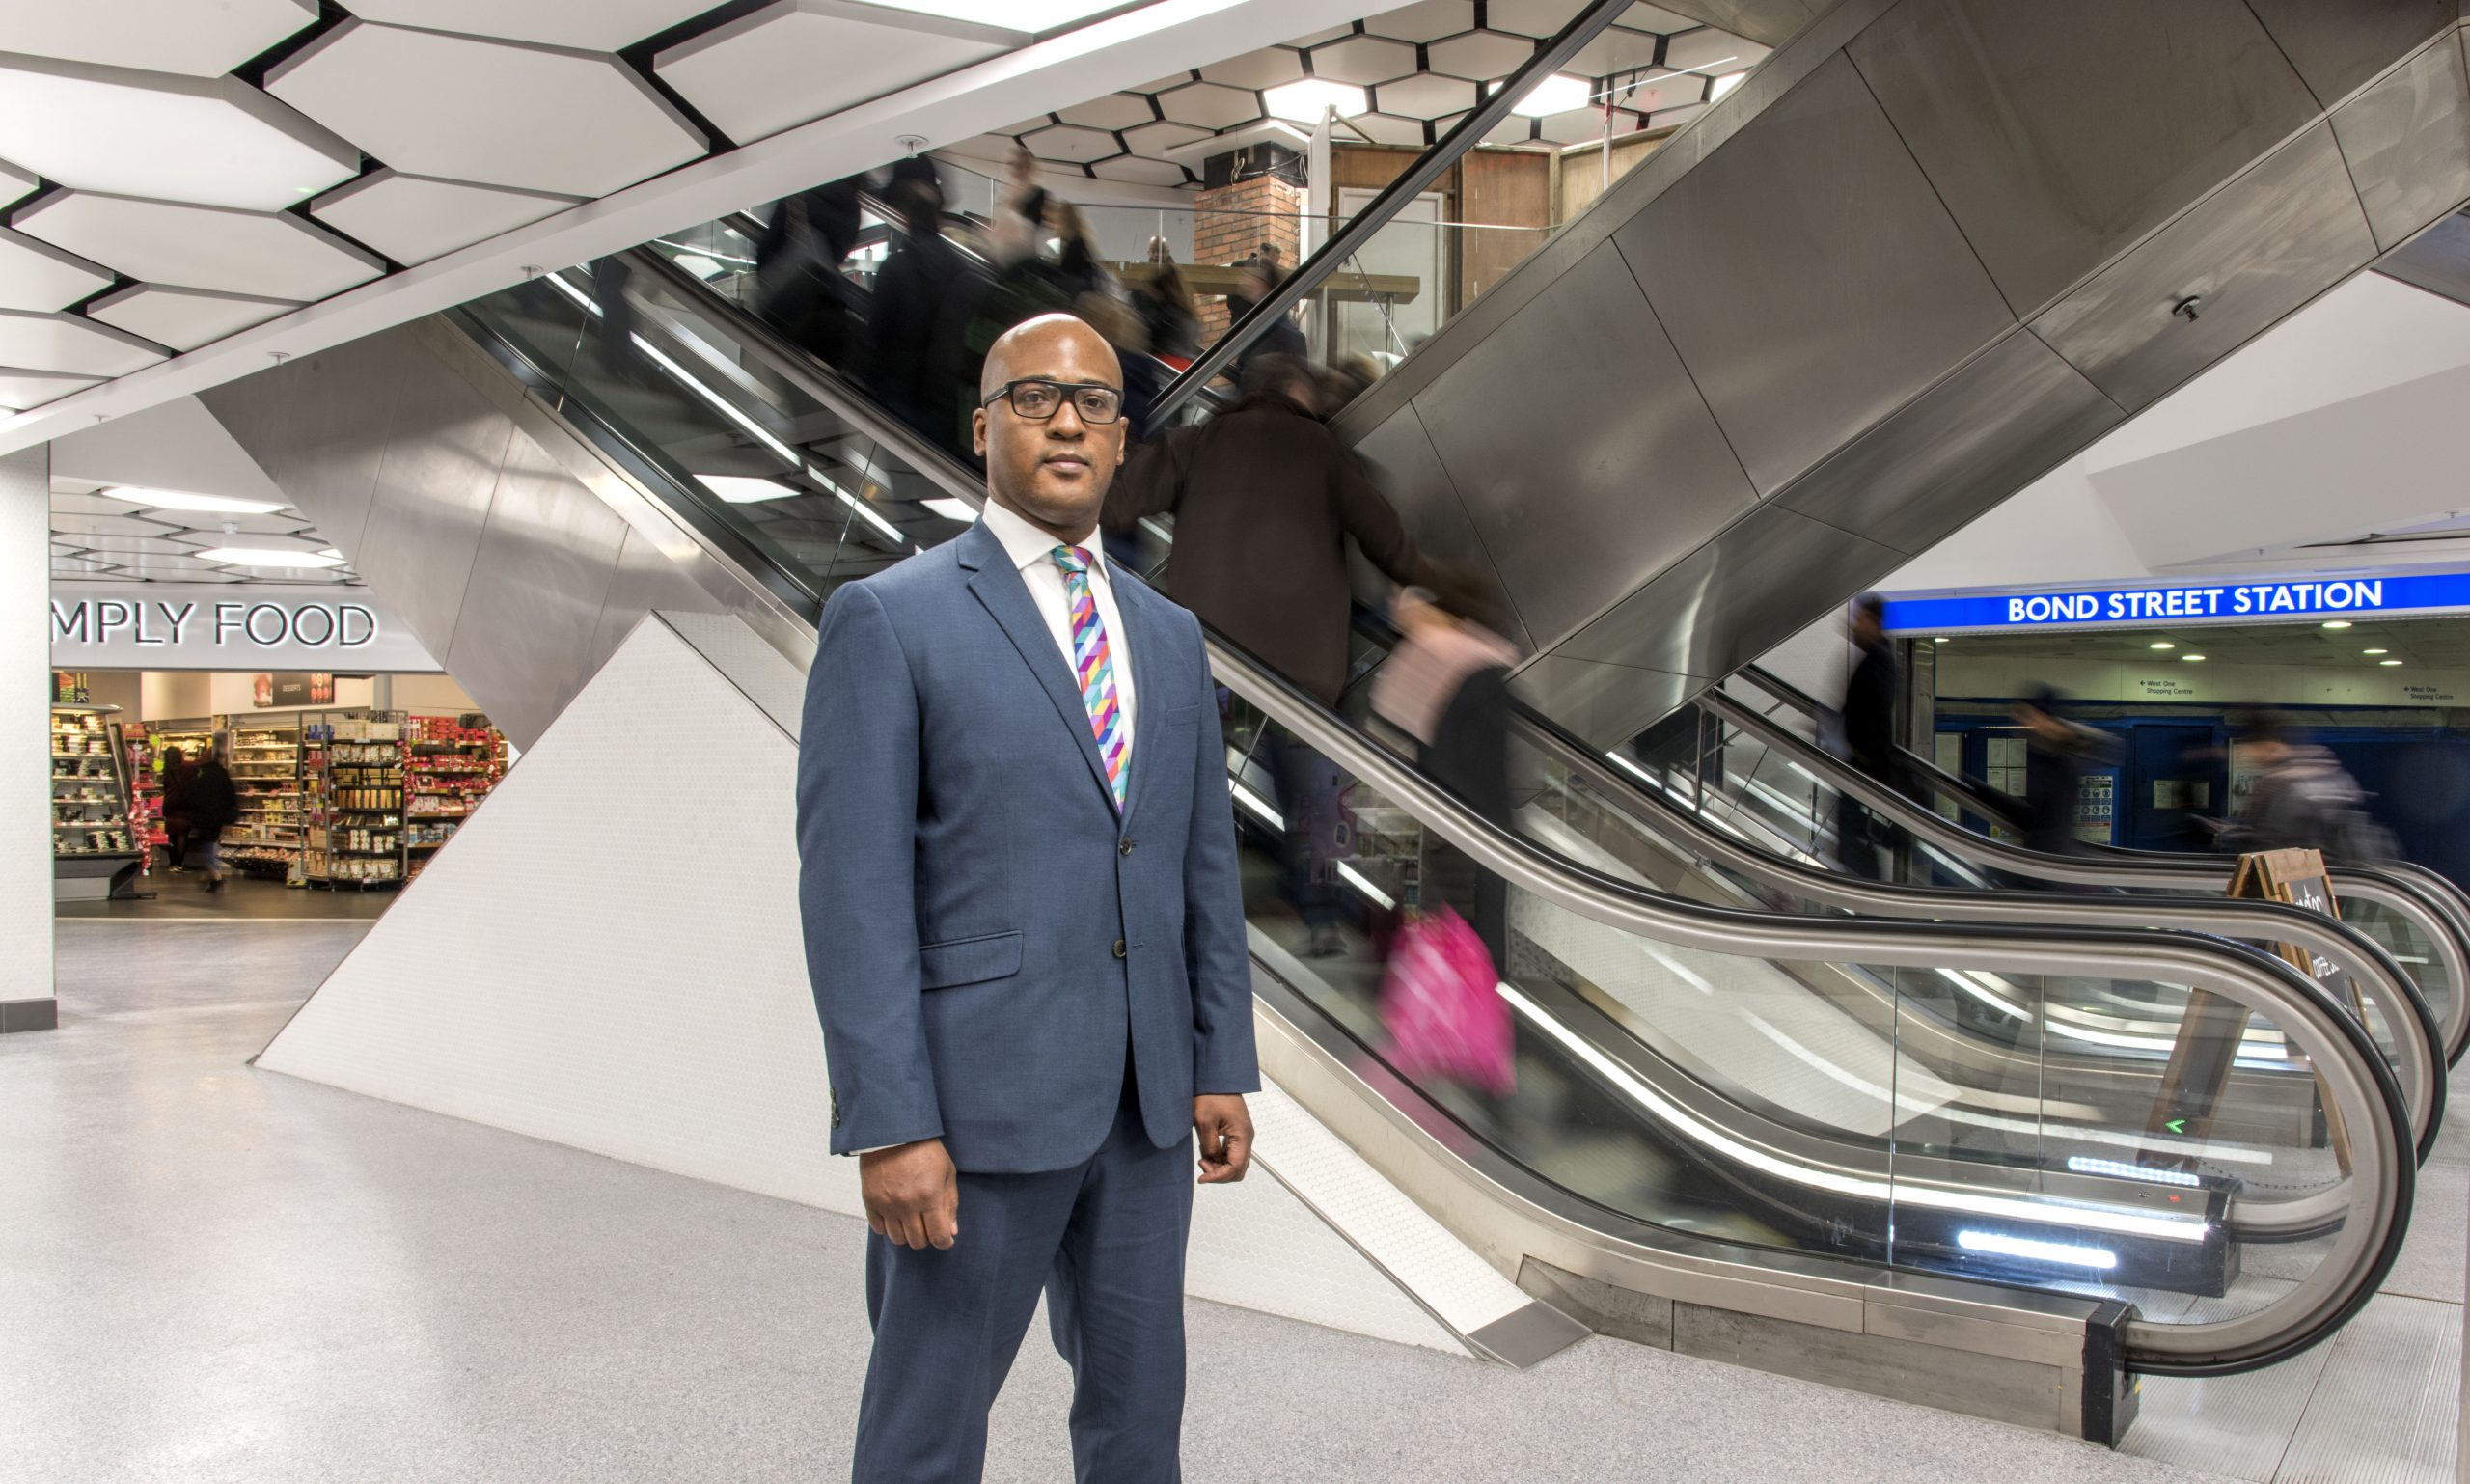 Cyrus Annan, Centre Manager, and his team have been leading the way with a raft of ideas and projects to encourage shoppers, retailers and office staff to think carefully about what they throw away and where it goes